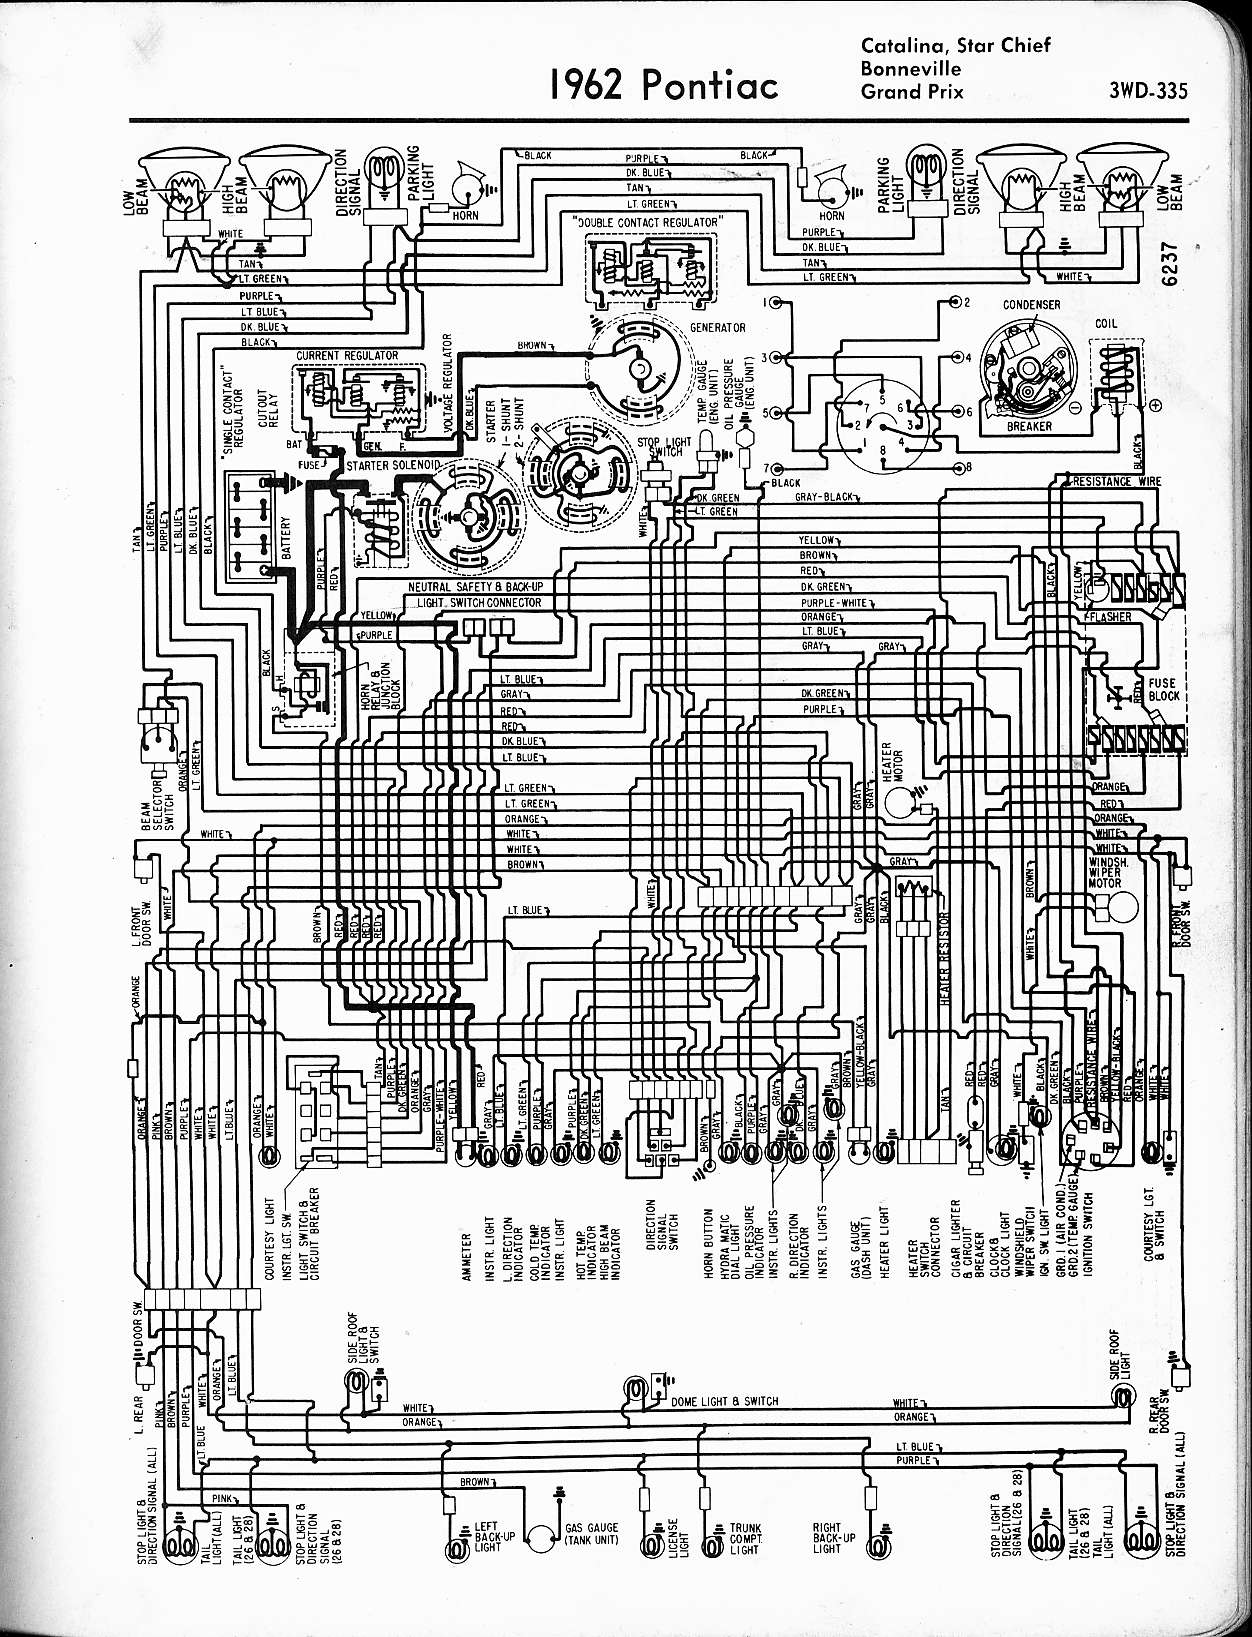 Wire Diagram For Pontiac List Of Schematic Circuit G5 Wiring Wallace Racing Diagrams Rh Wallaceracing Com Montana G6